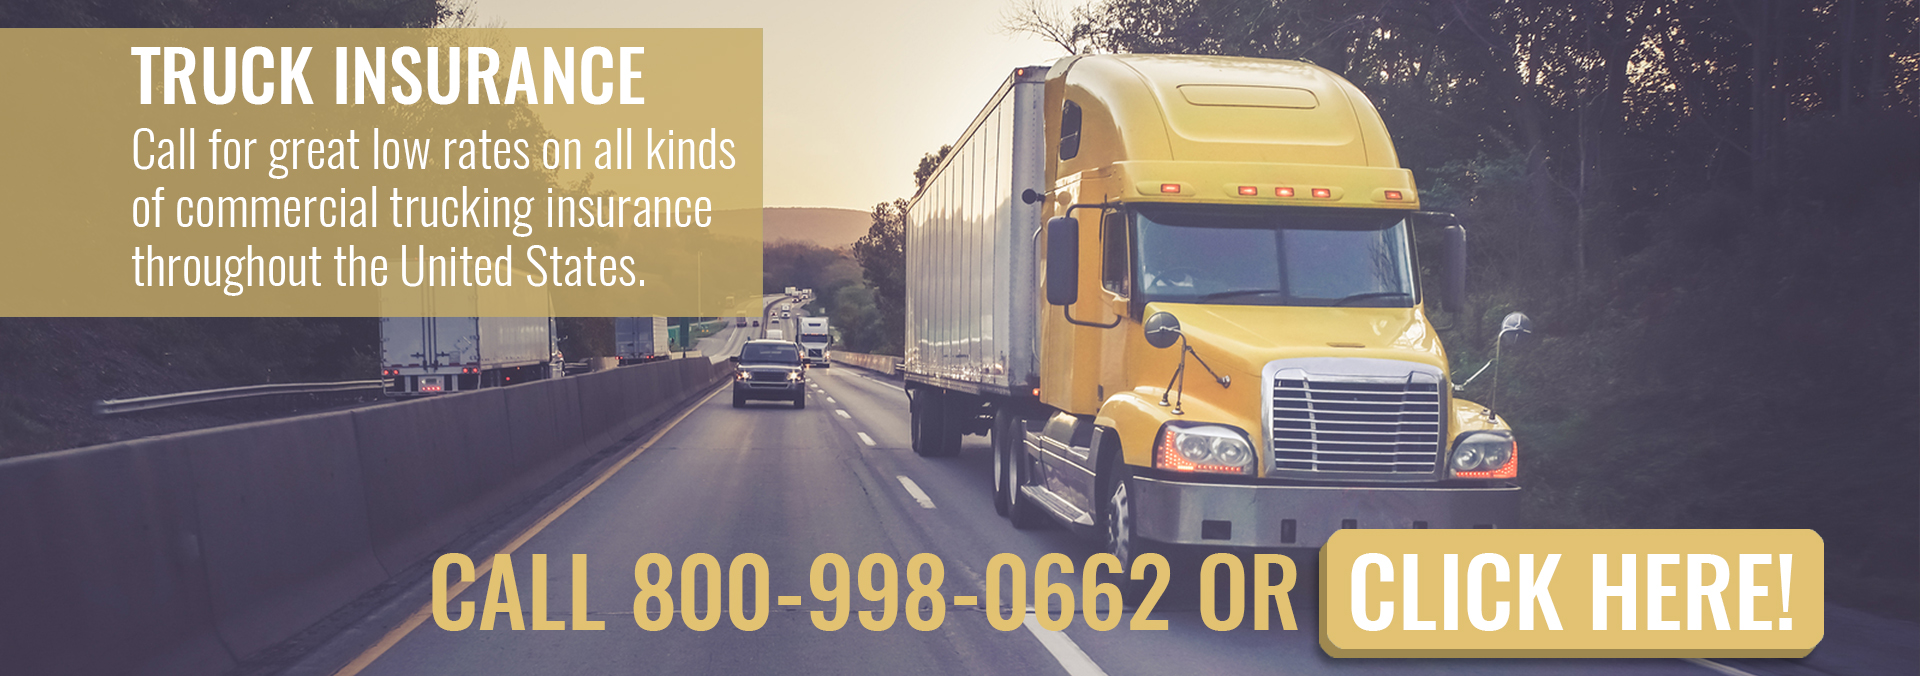 Commercial Truck Insurance Ohio